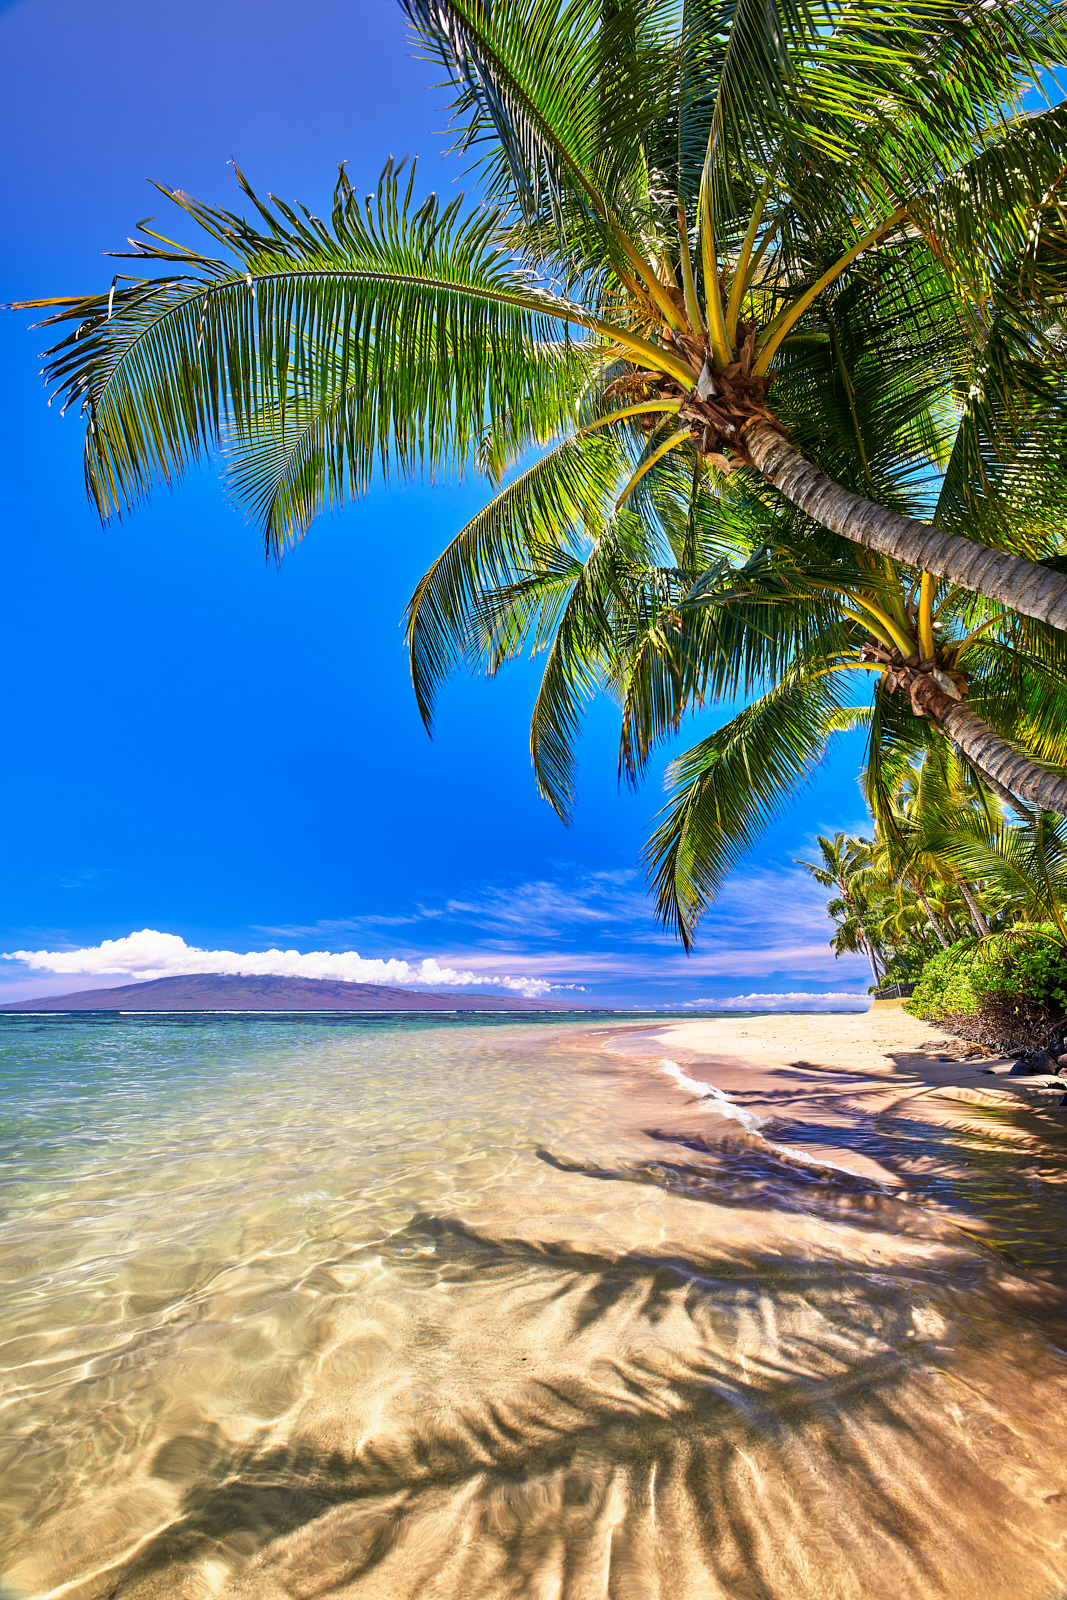 crystal clear water and beautiful coconut palms line the Lahaina coastline at Baby Beach on the island of Maui, Hawaii